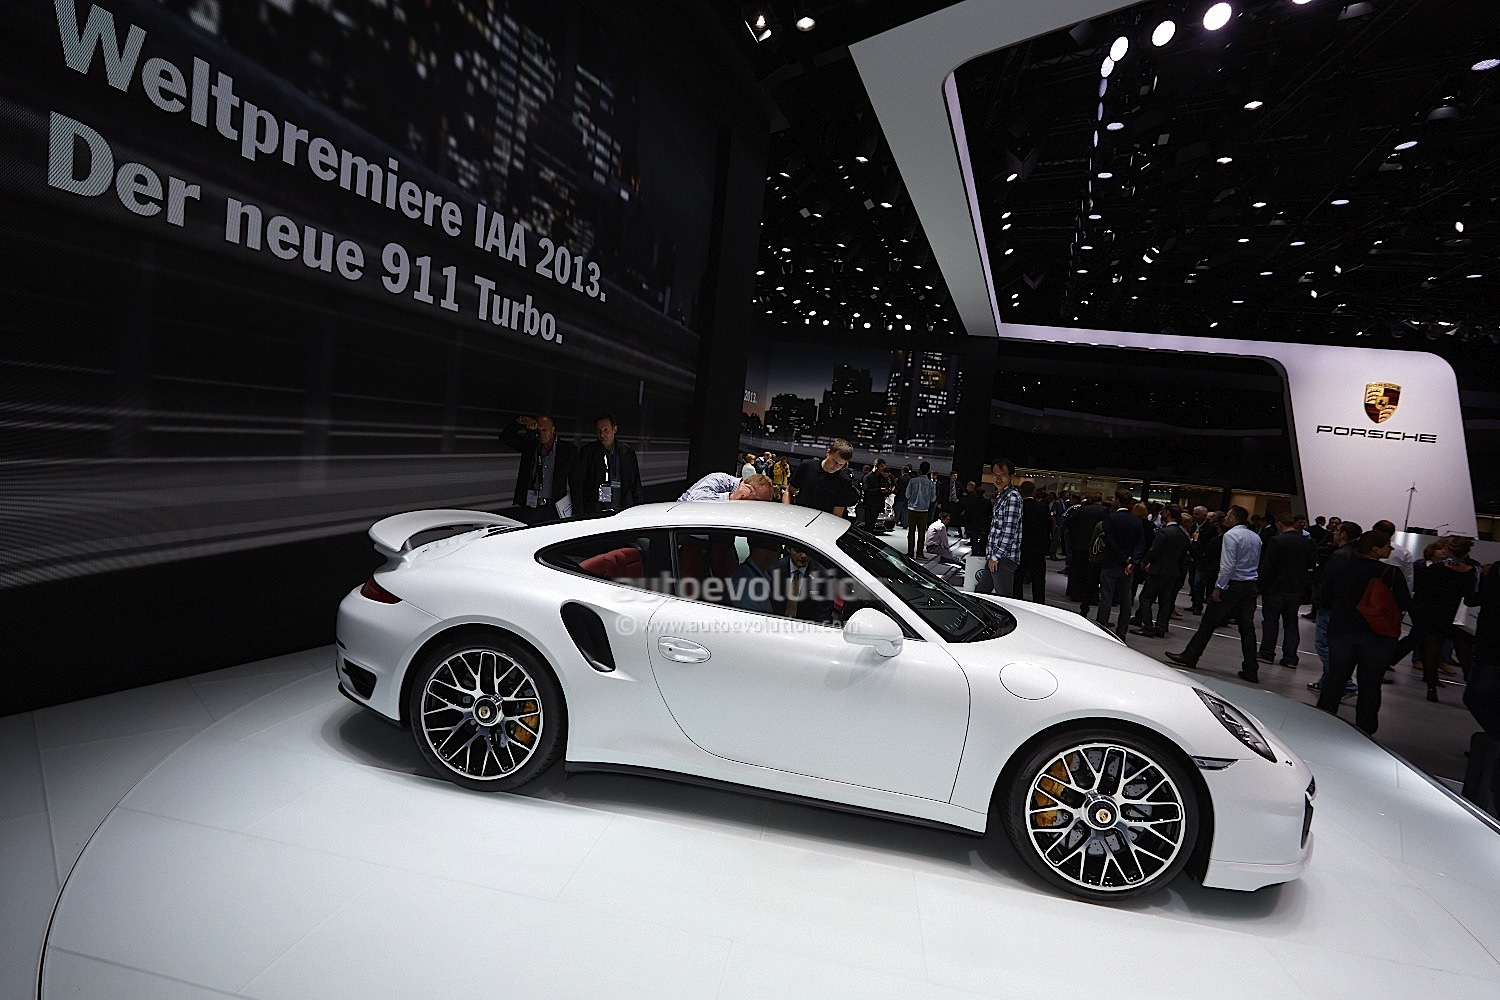 awesome porsche 911 turbo s with beater martini livery was once white autoevolution - 911 Porsche 2015 White